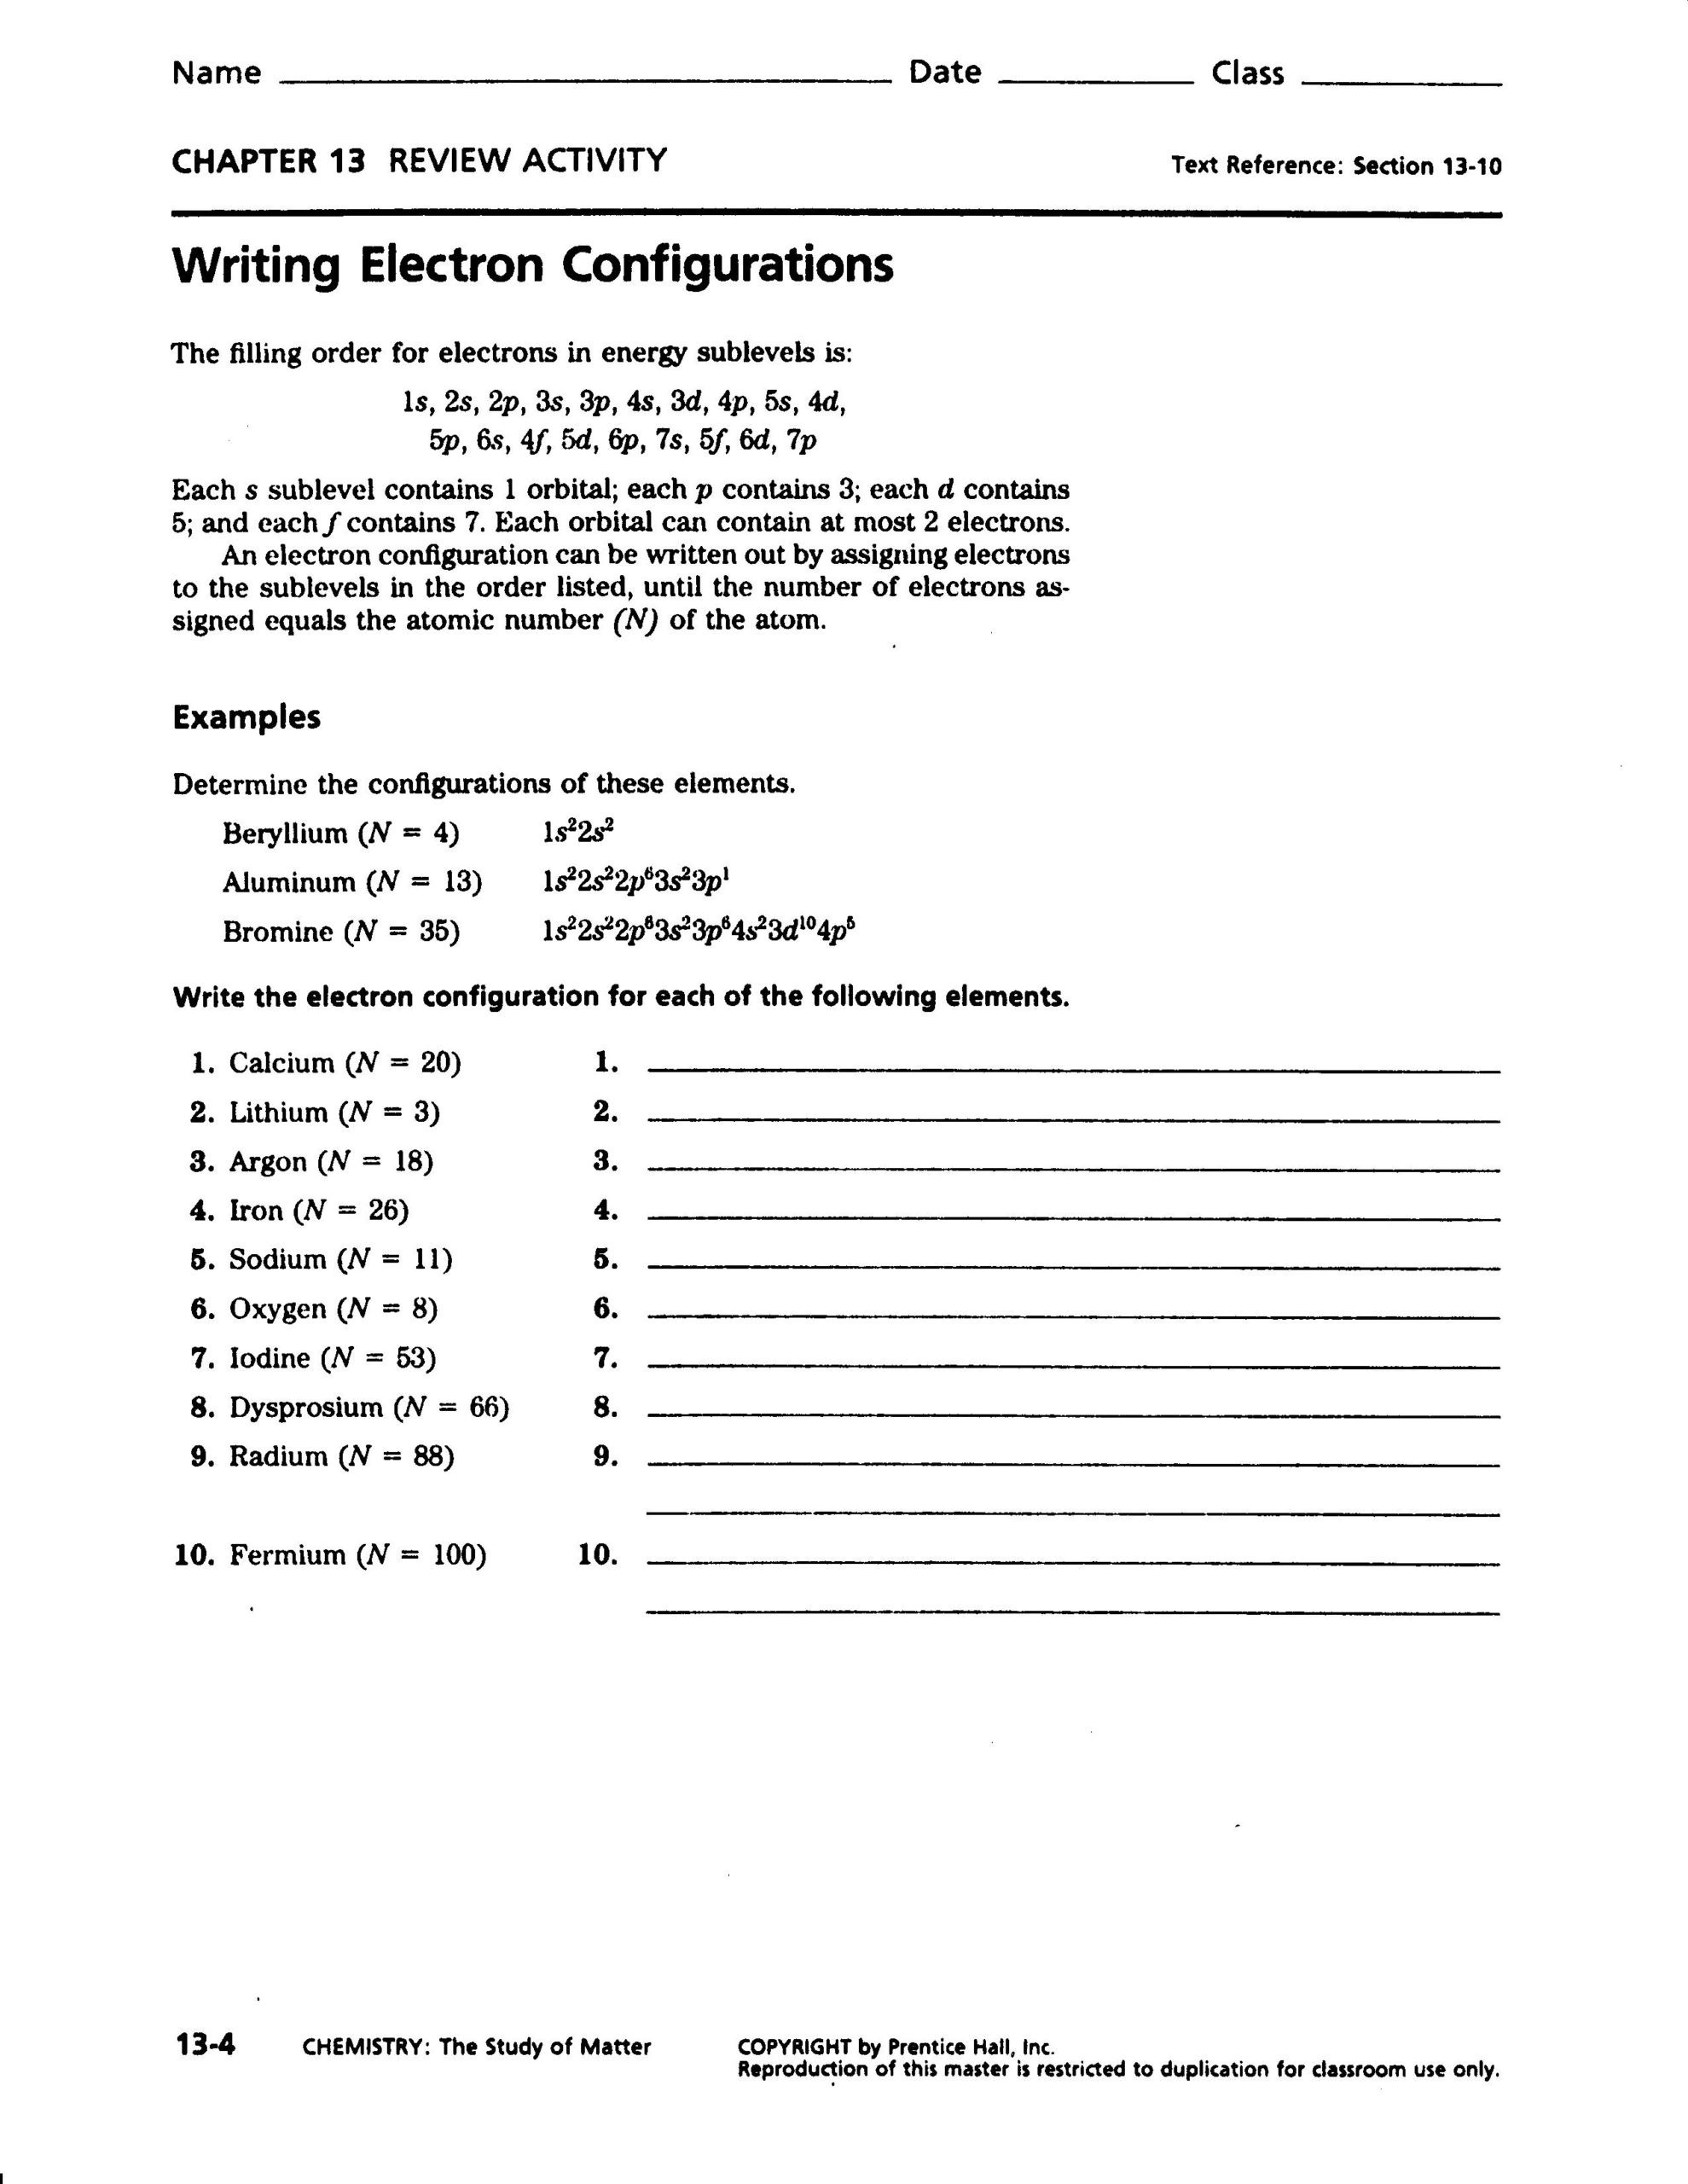 Conditional Statements Worksheet with Answers Logic Puzzle Games Capitalization Worksheets Prentice Hall